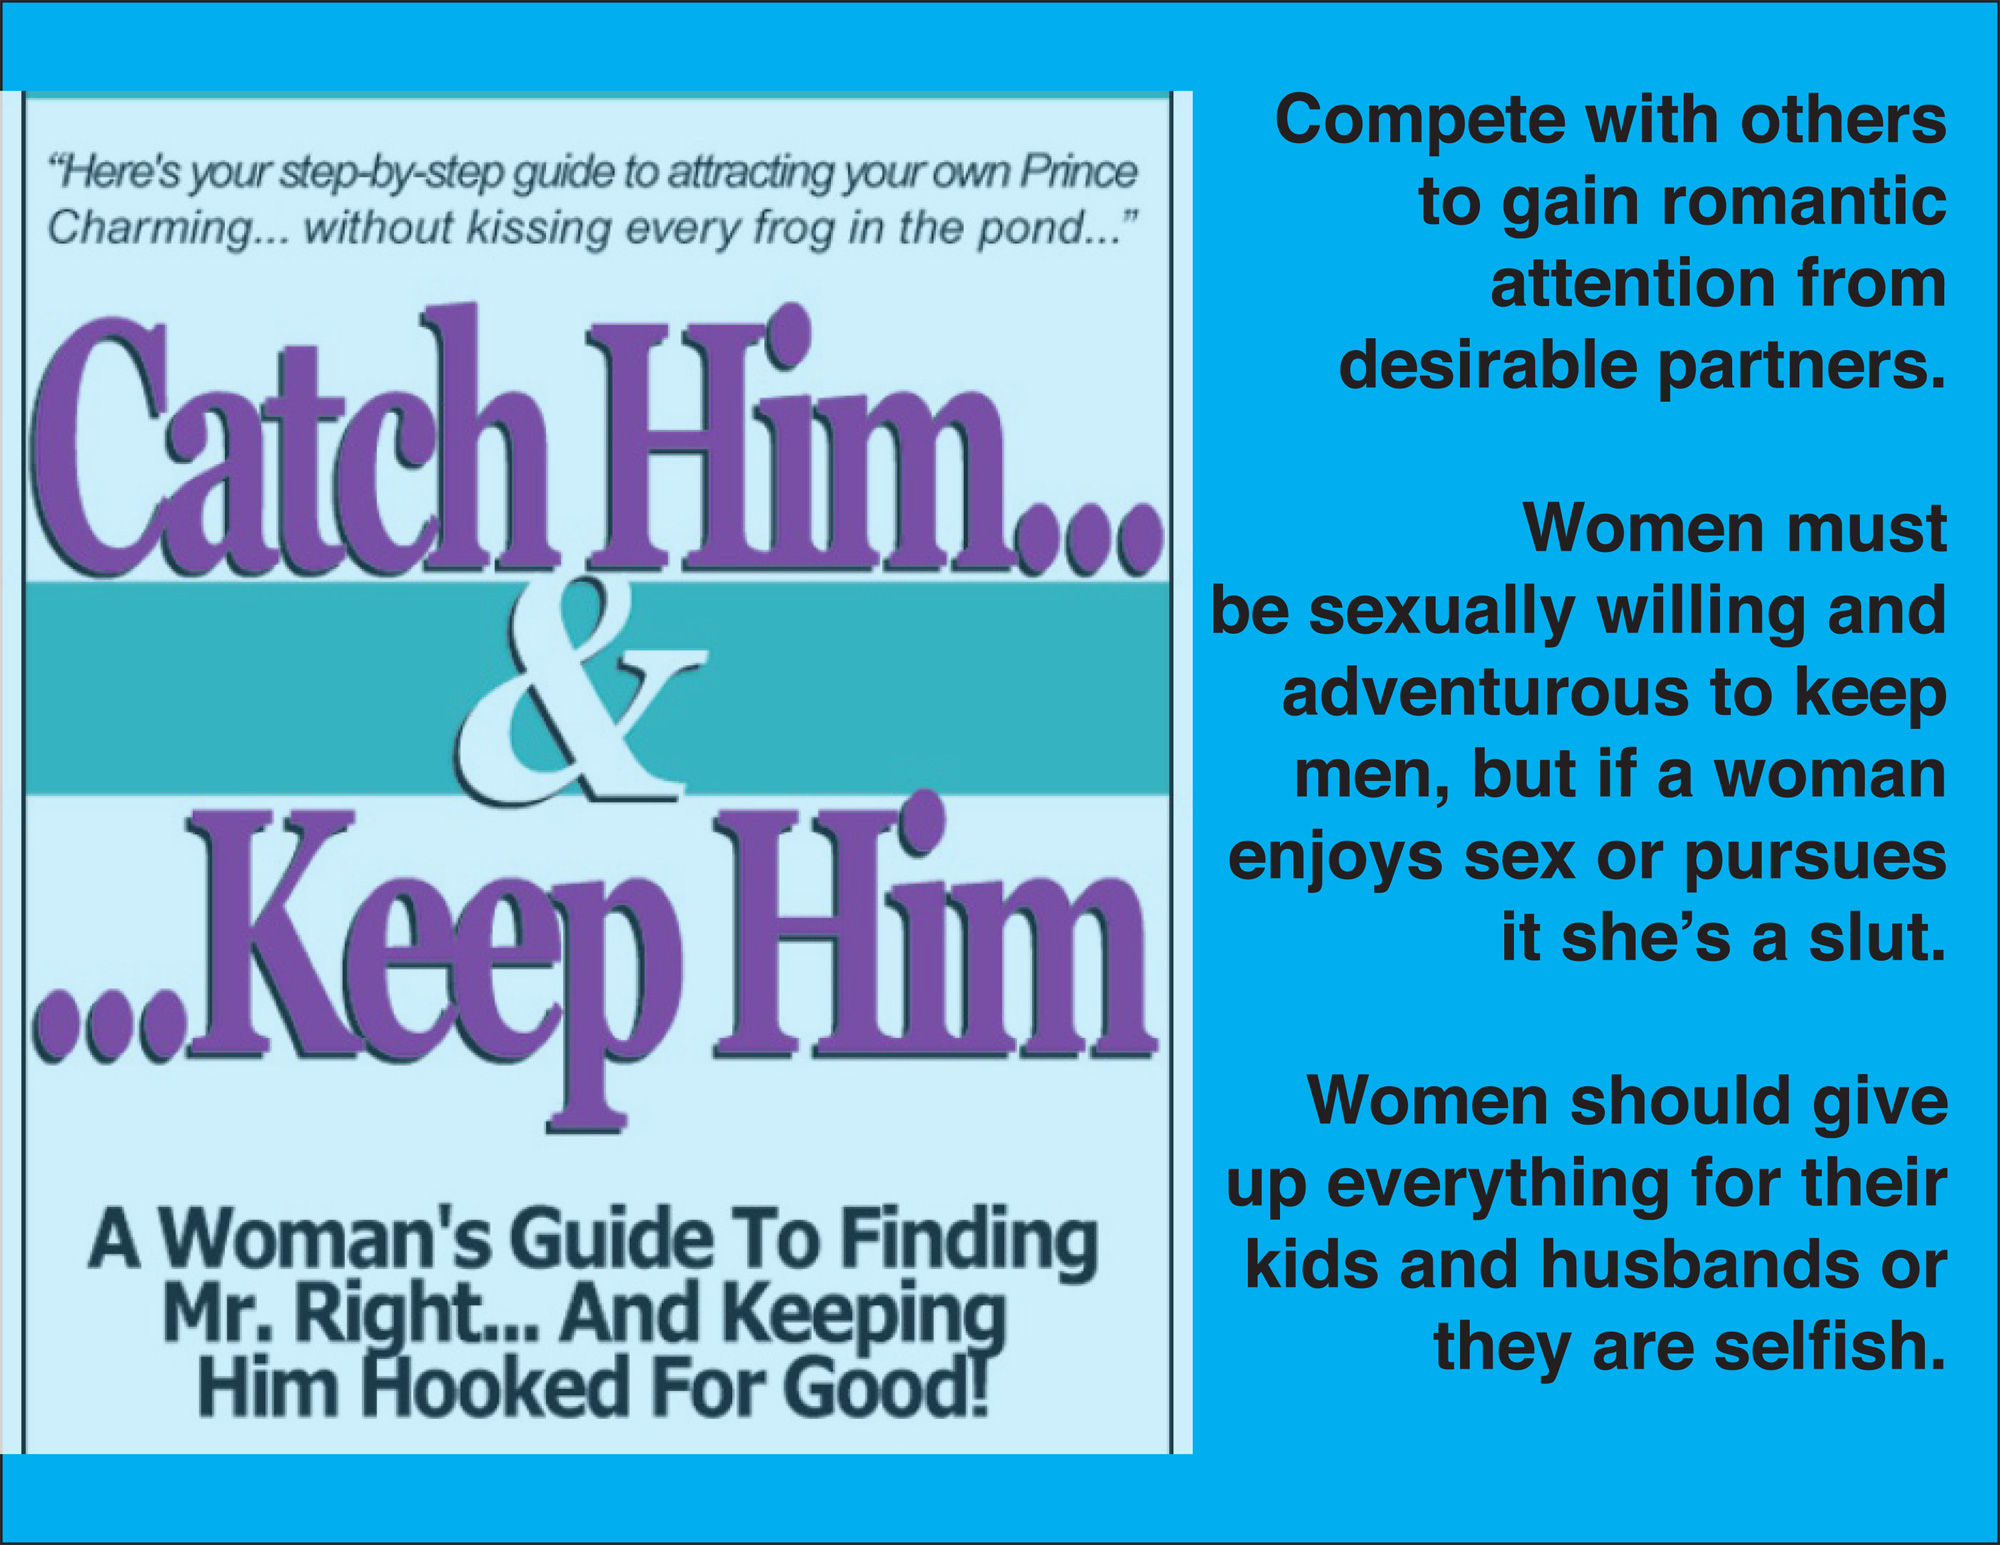 Image of Catch Him and Keep Him book cover with text reading 'Compete with others to gain romantic attention from desirable partners, Women must be sexually willing and adventurous to keep men, but if a woman enjoys sex or pursues it she's a slut, Women should give up everything for their kids and husbands or they are selfish'